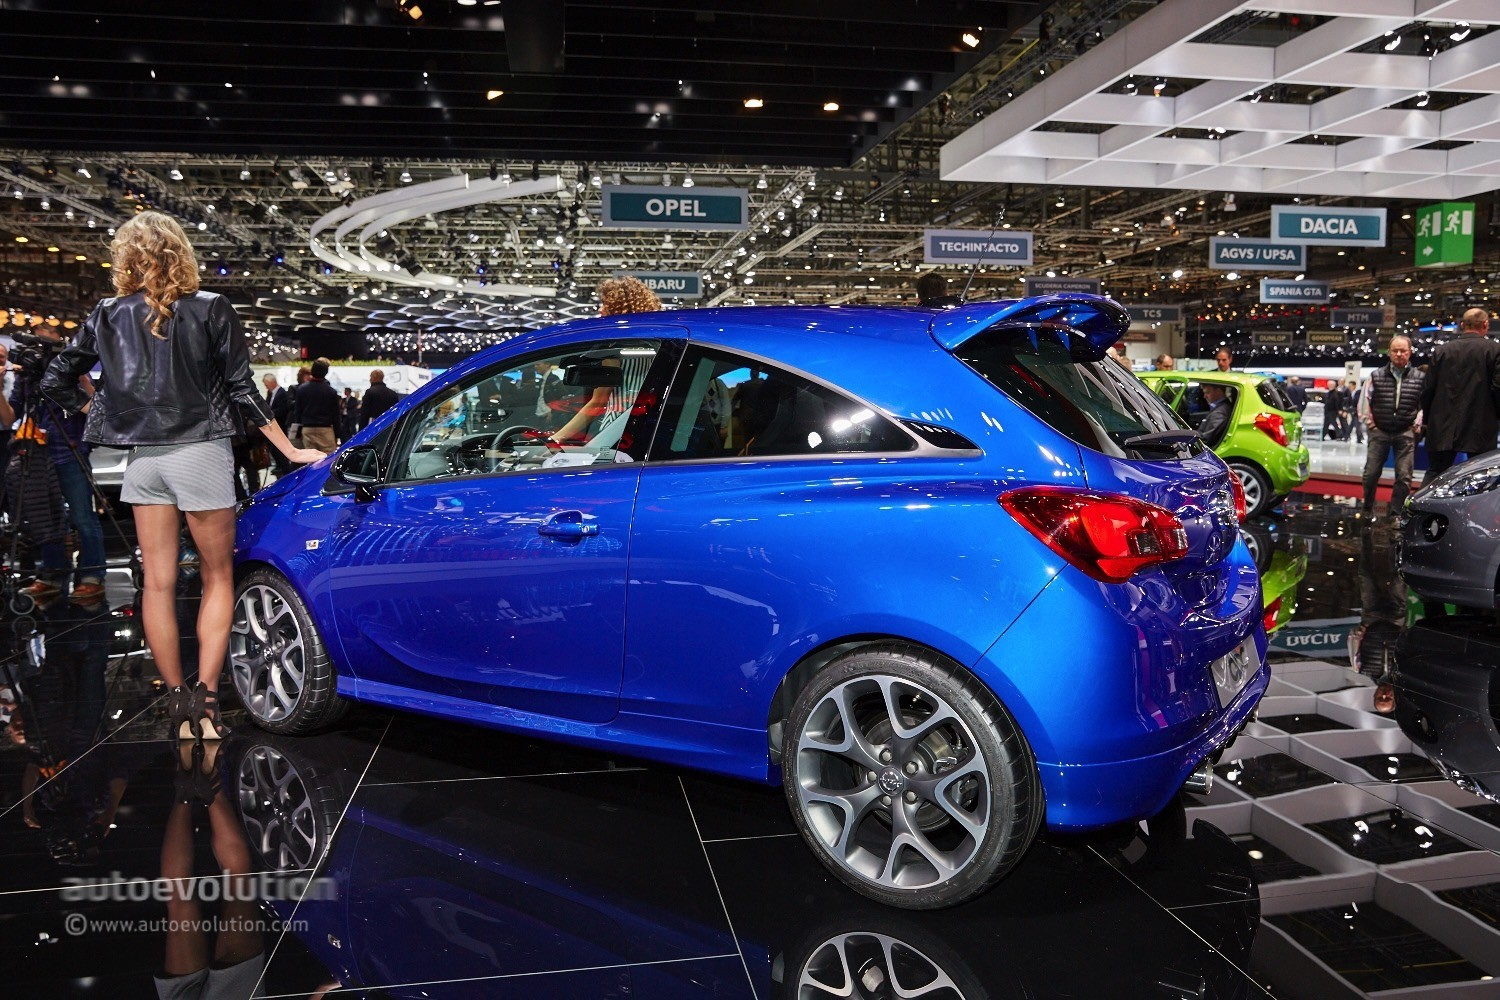 Nevada Auto Sound >> 2015 Opel Corsa OPC Makes the Hot Girls of Geneva Go Nim Nim - Video, Live Photos - autoevolution